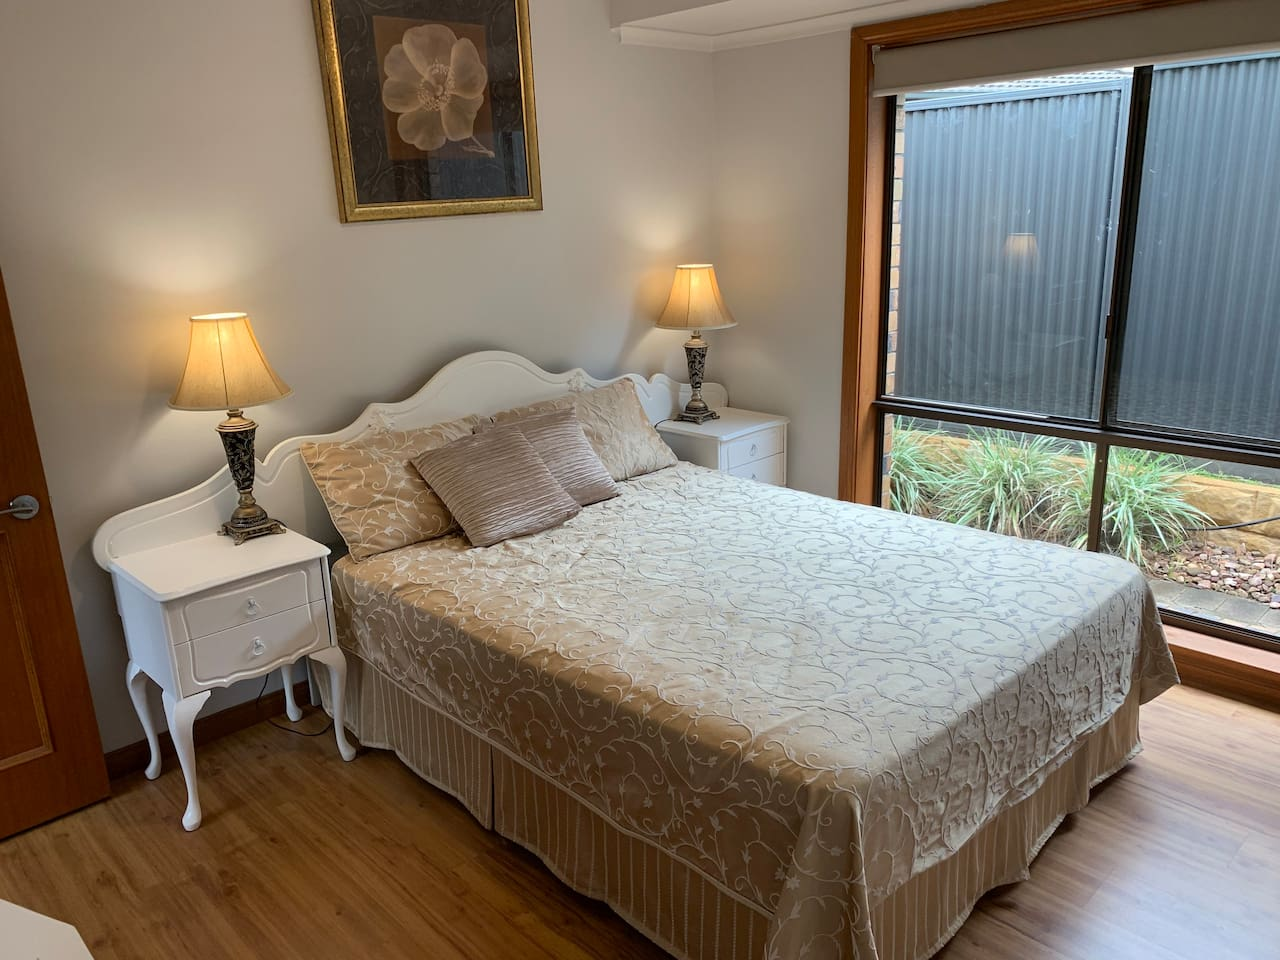 Queen bedroom with built in wardrobes, ducted reverse cycle air conditioning and ceiling fan